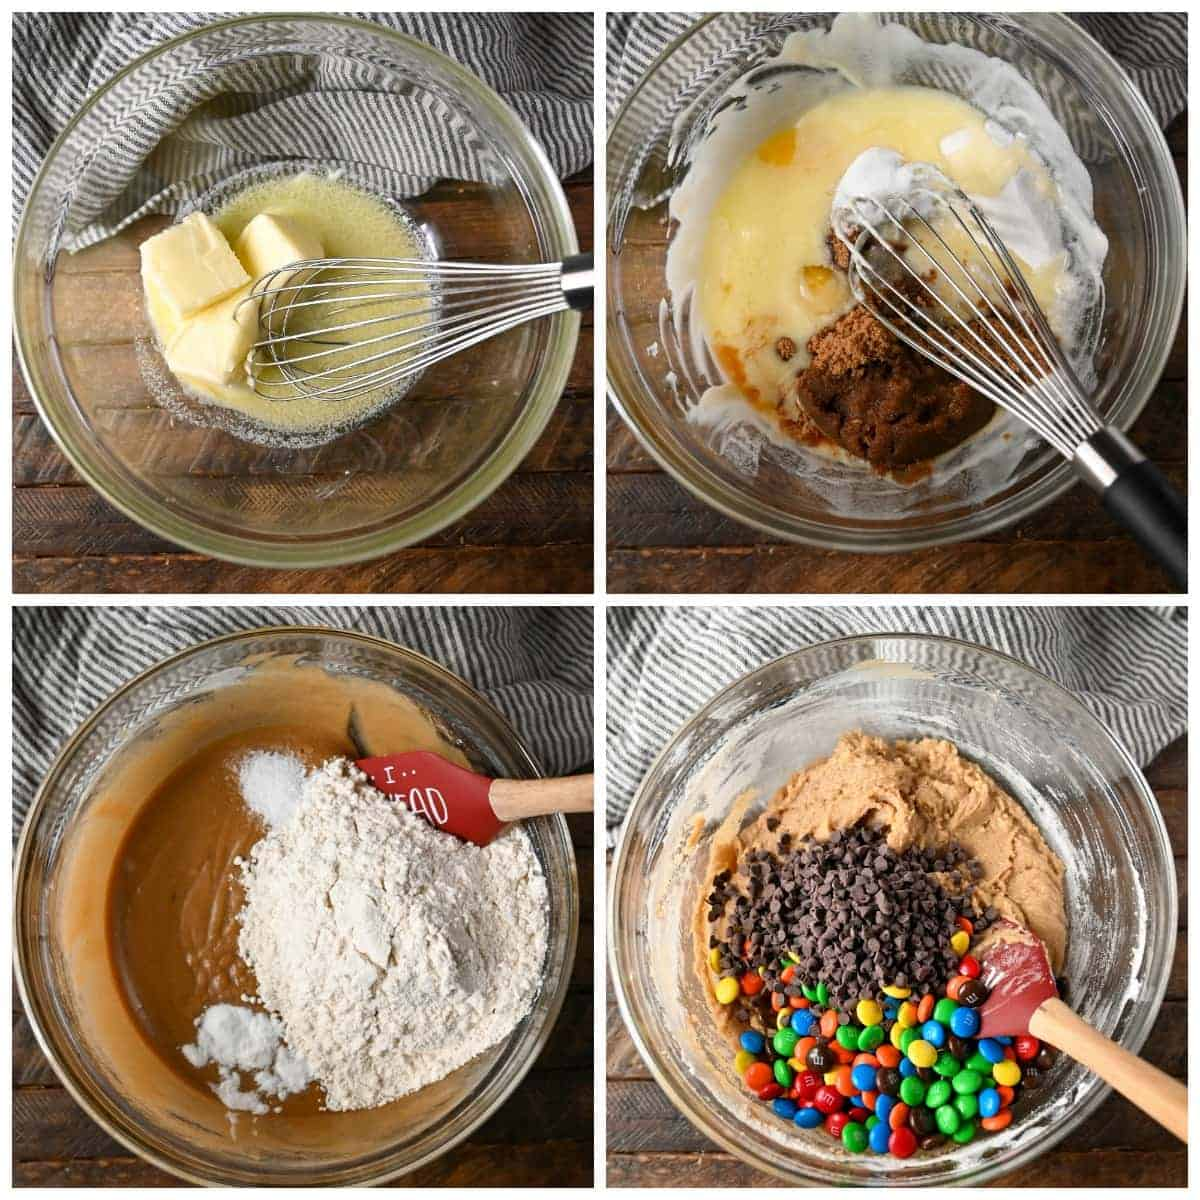 Four process photos. First one, melted butter in a bowl. Secodn one, sugar and brown sugar added to the bowl. Third one, flour mixture being added to the bowl. Chocolate chips and M&M's poured into the batter.